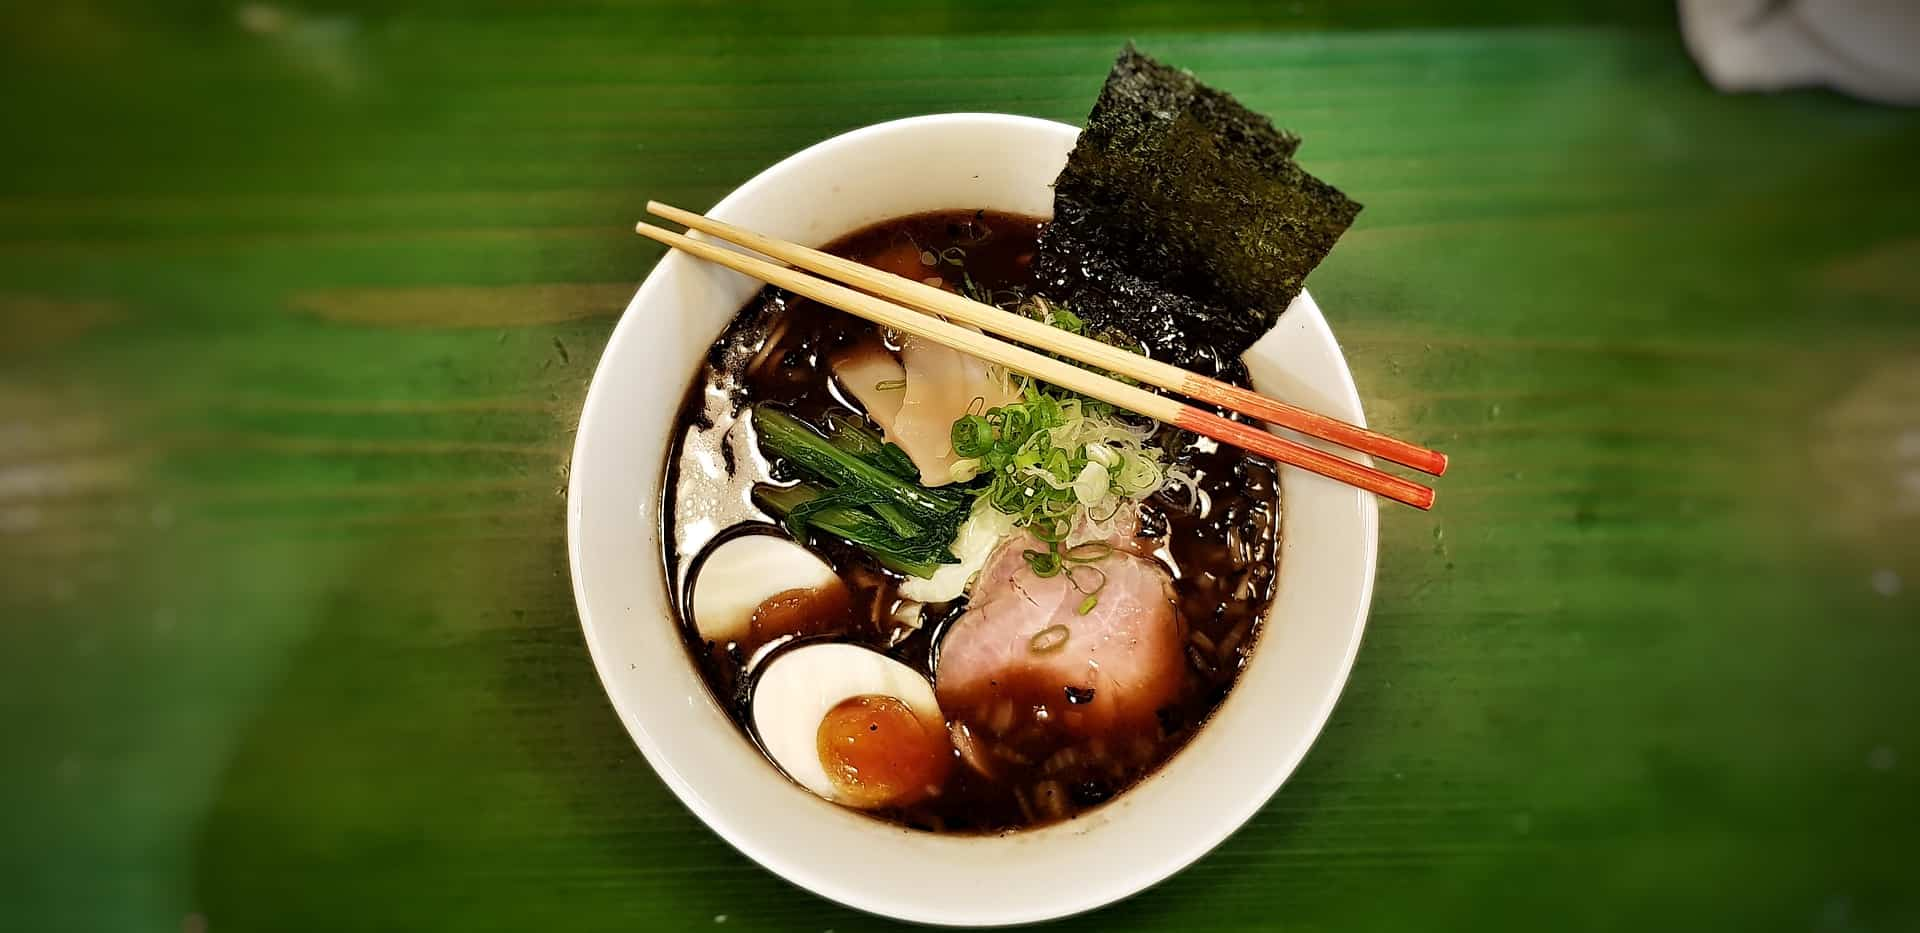 a bowl of ramen contained of eggs, meat, seaweed, with a black-color soup